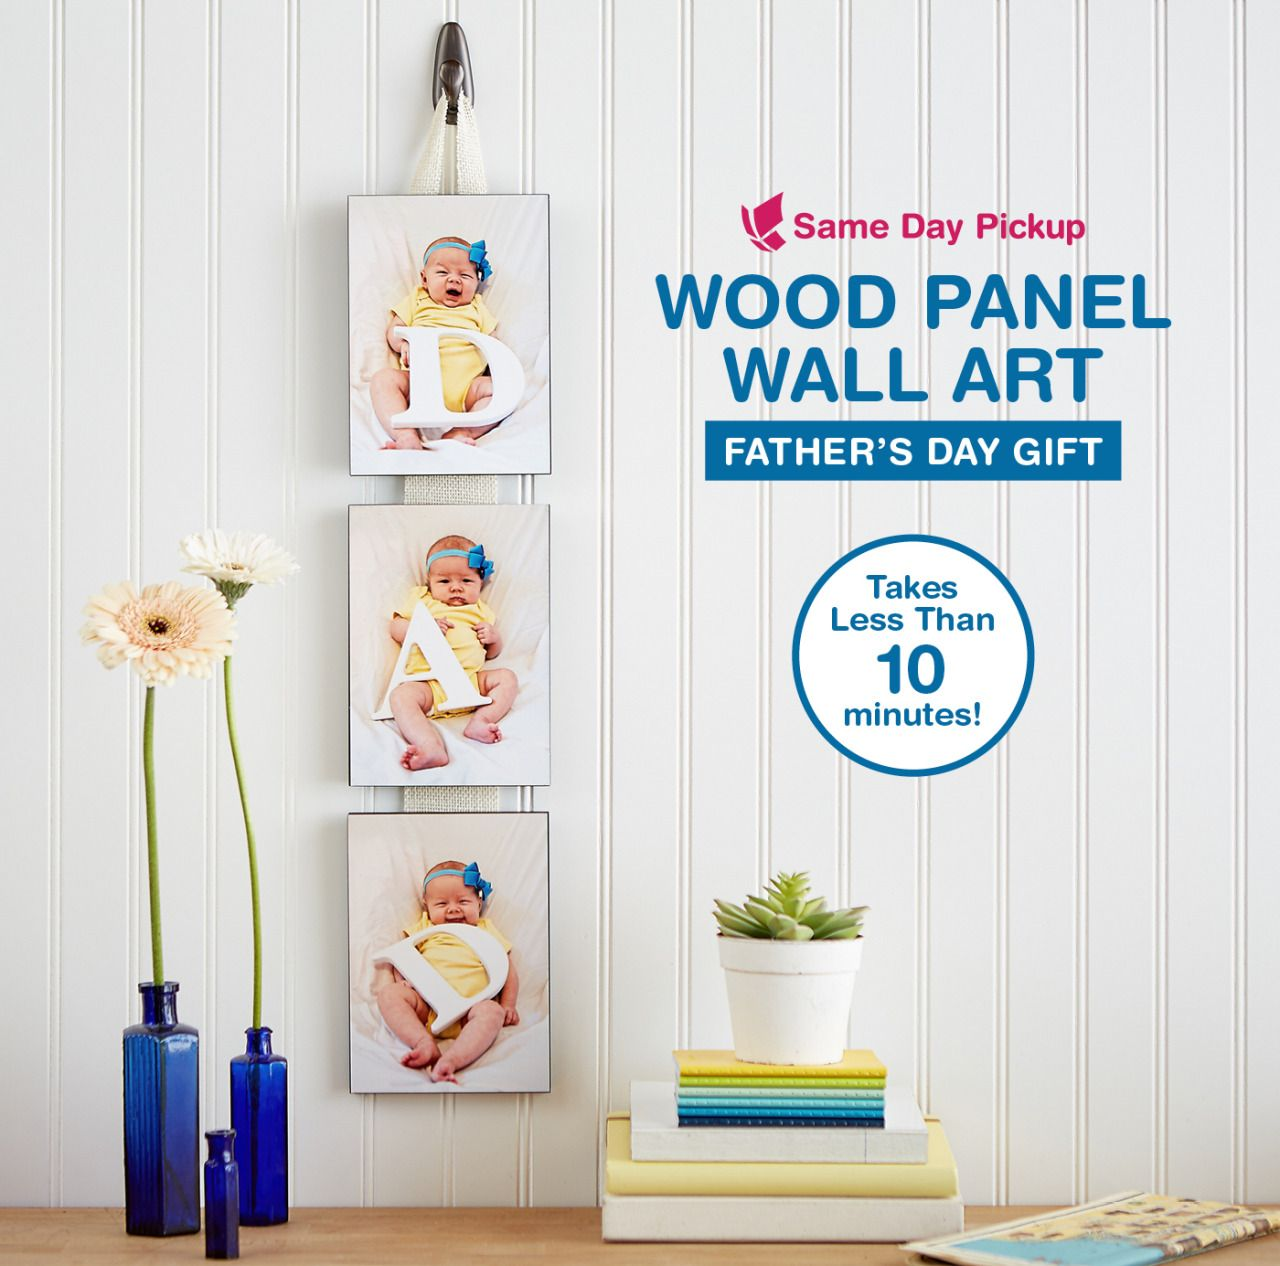 Father's Day Gift Create home decor inspired by Dad's pride and joy. This easy DIY gift is sure to melt his heart on his first Father's Day. Takes less than 10 minutes to build! Wall Decor